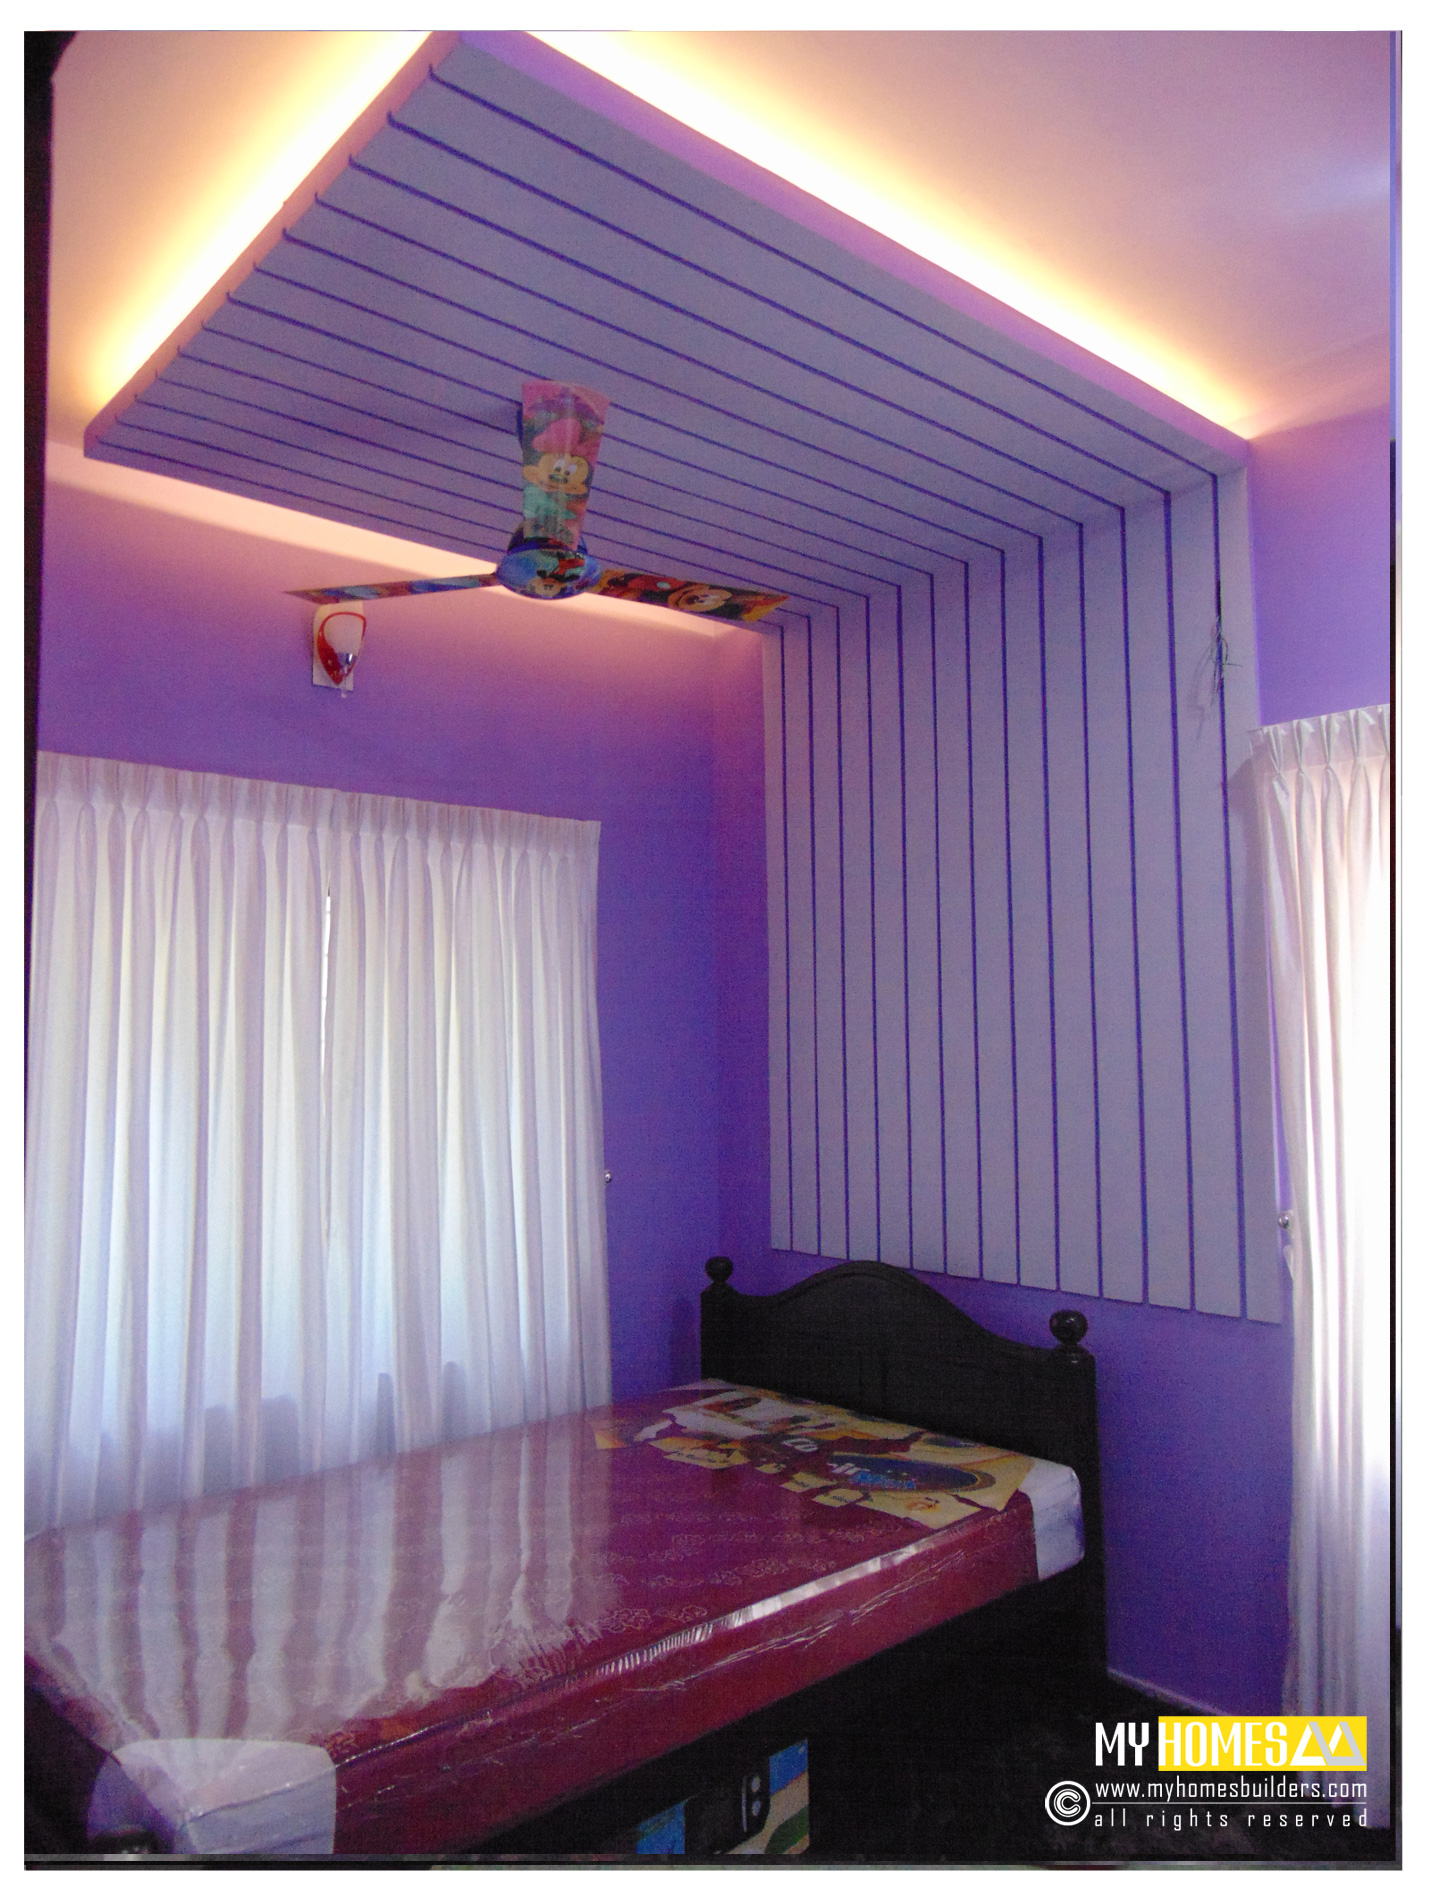 Simple style interior ideal kids bedroom designs in kerala for Simple kerala home designs